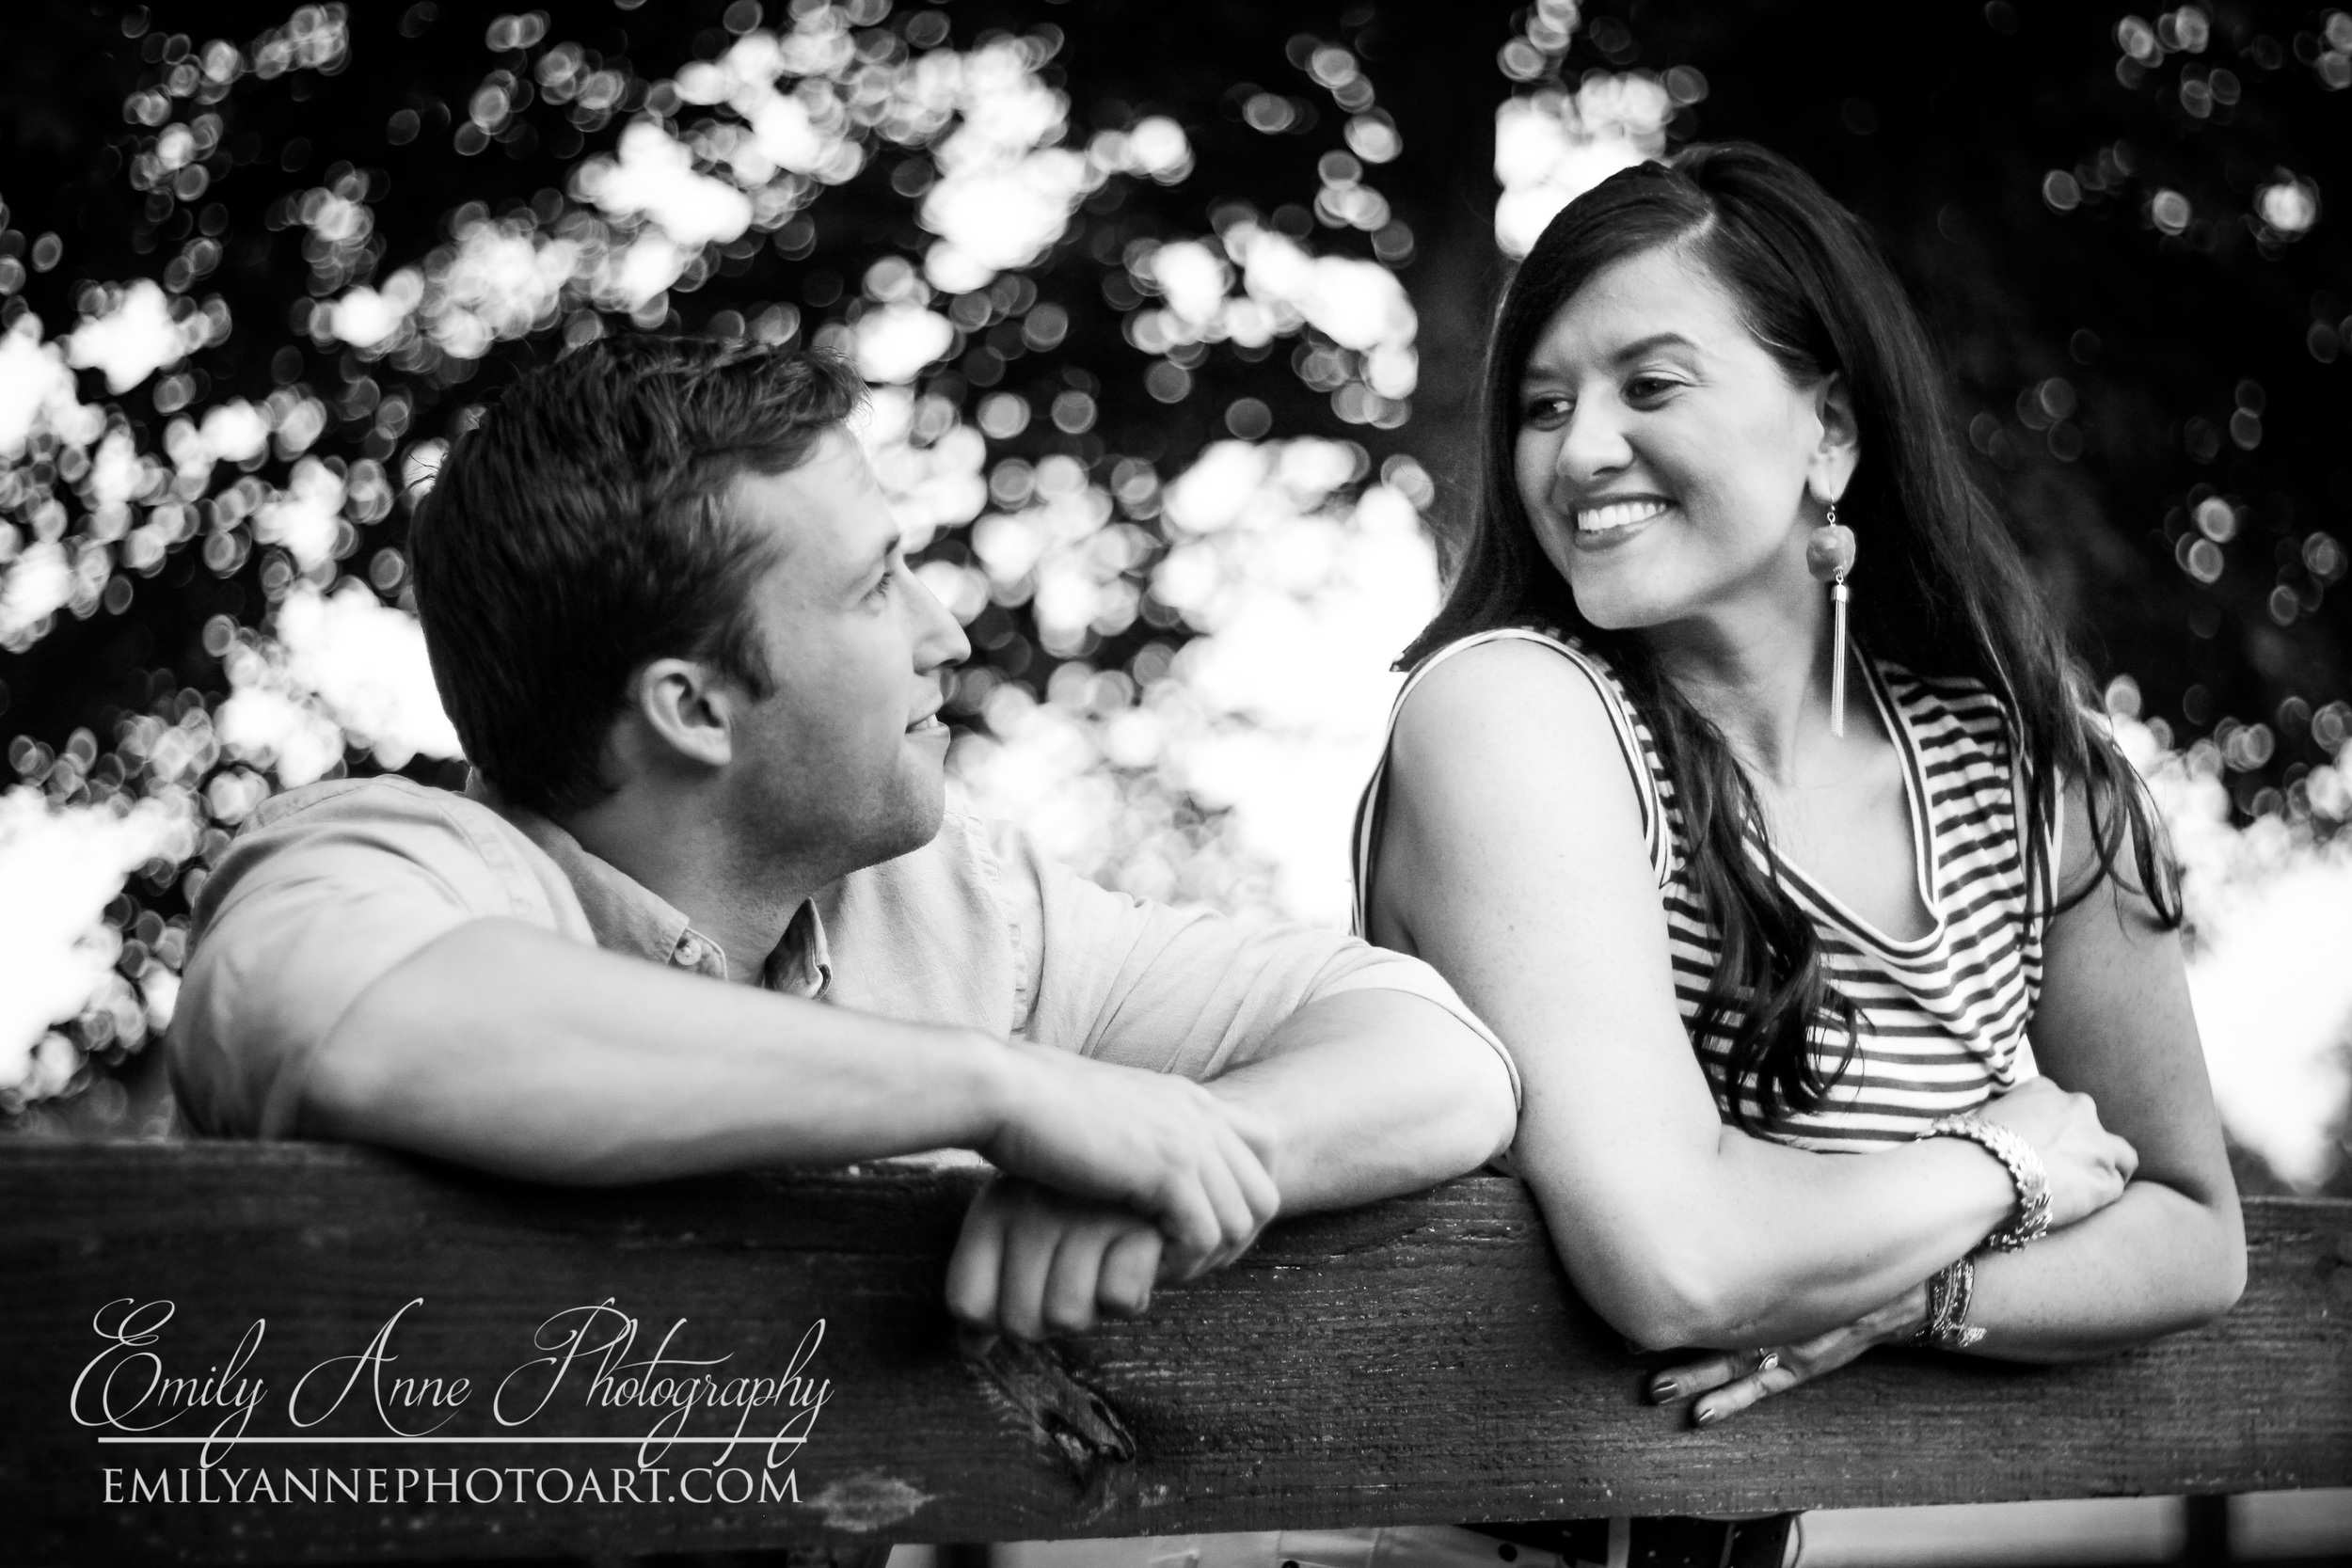 I'm not on the fence about how this image turned out. They both have a light in their eyes that is irreplaceable.